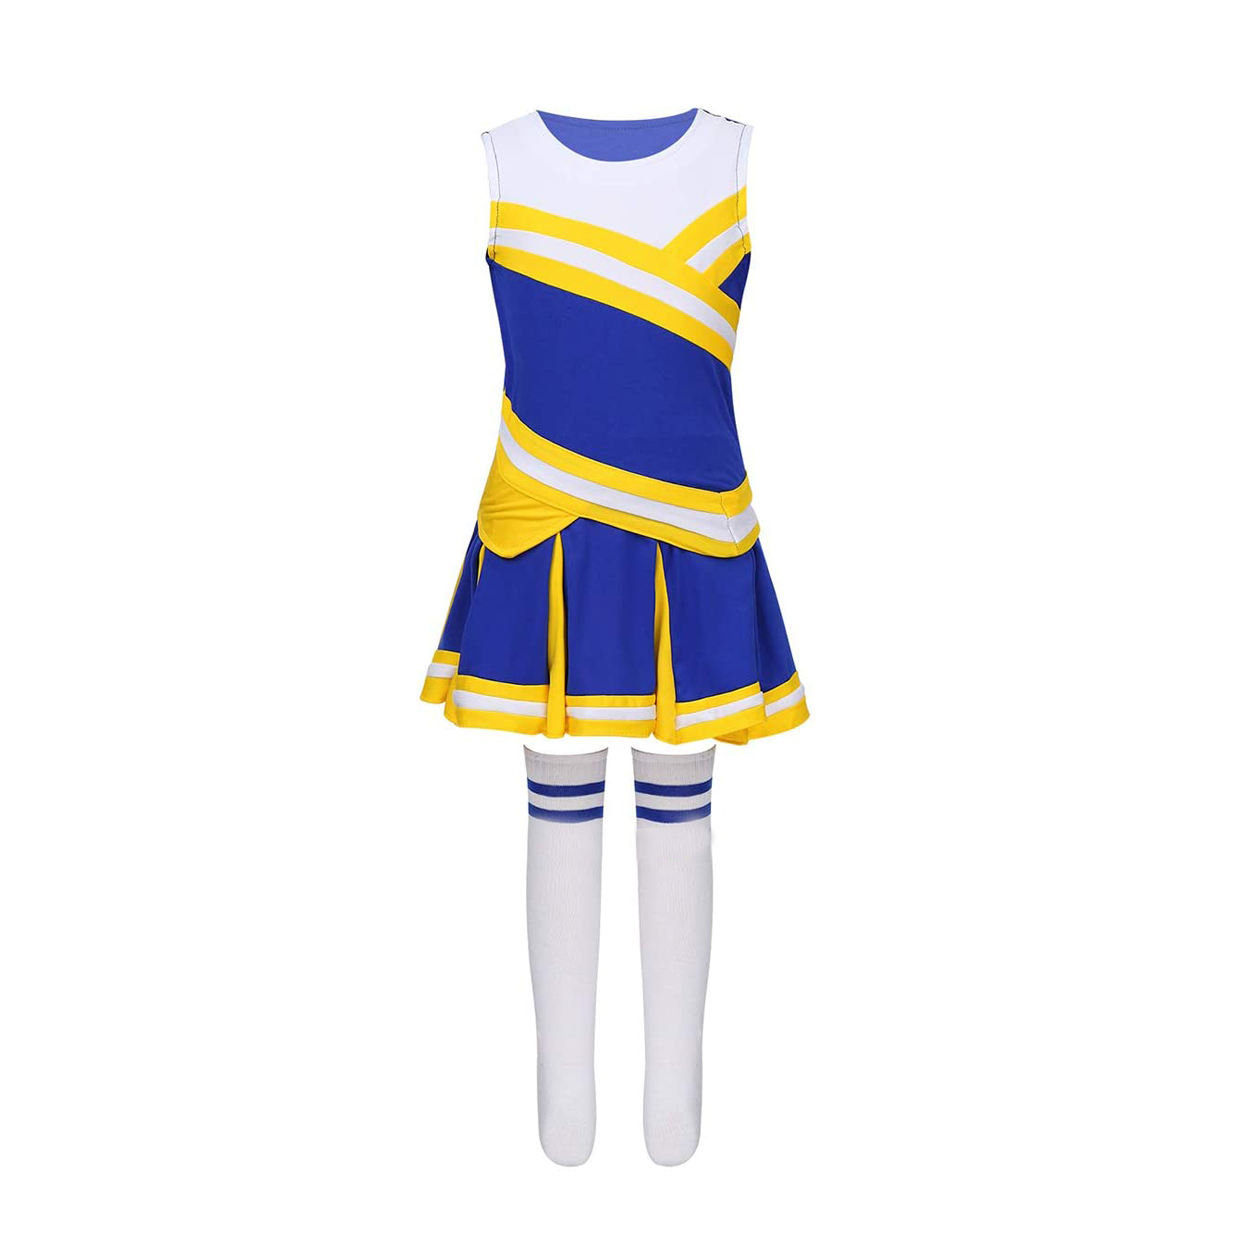 2020 new design logo printed washed cheerleading uniform